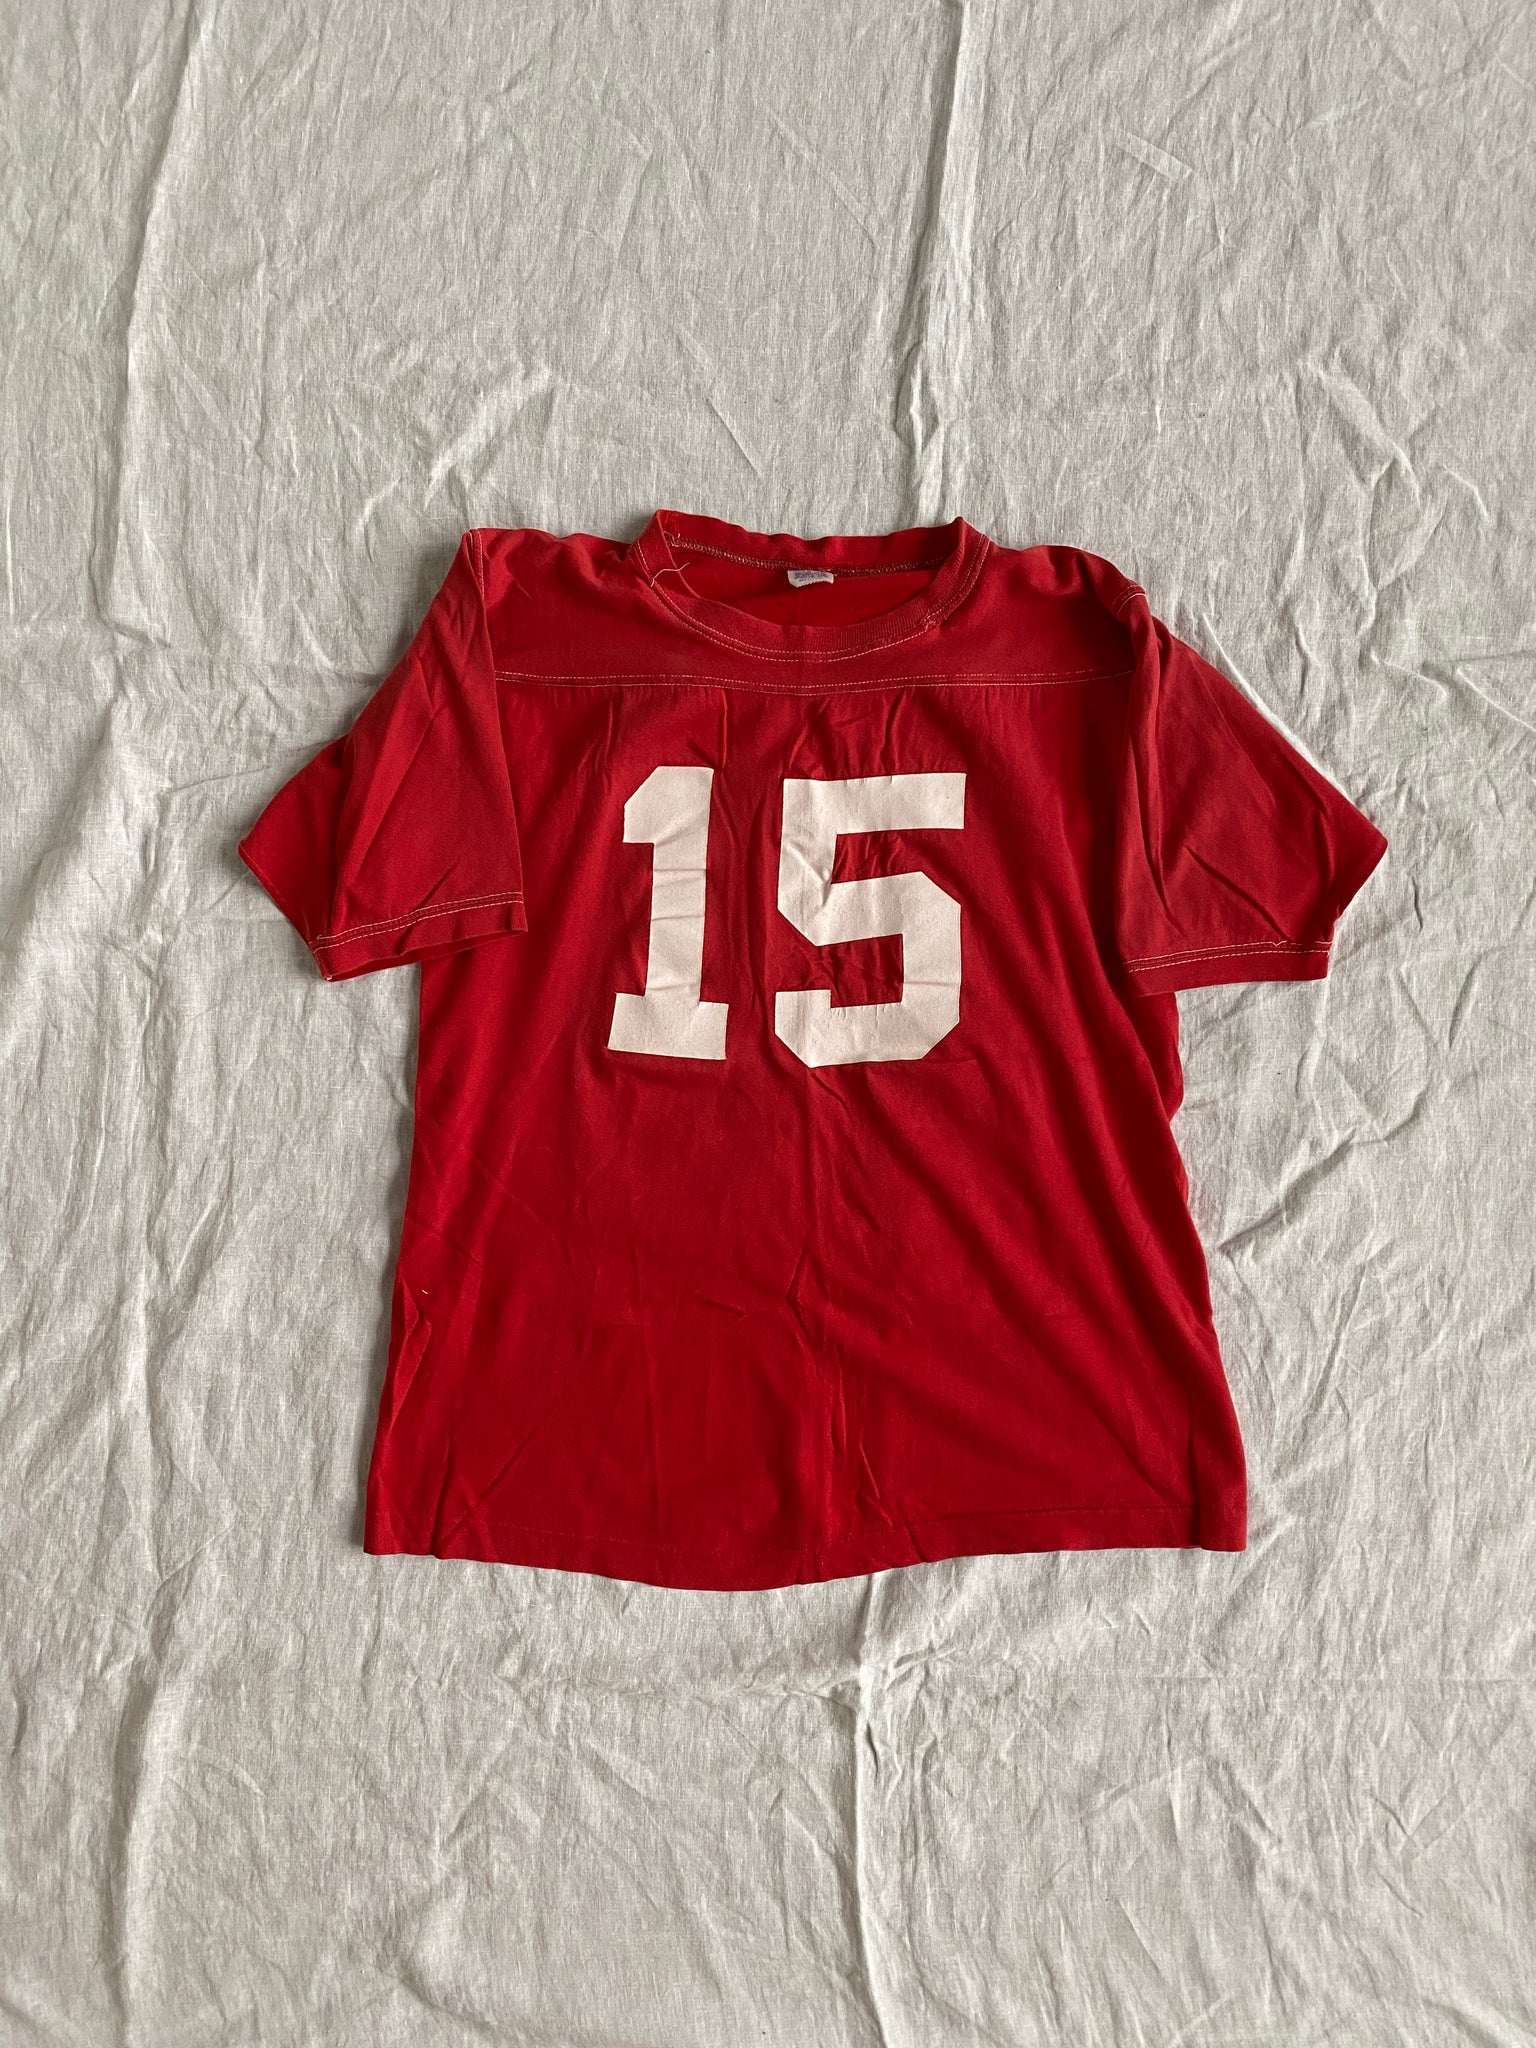 70s Red Short Sleeve Jersey Size M